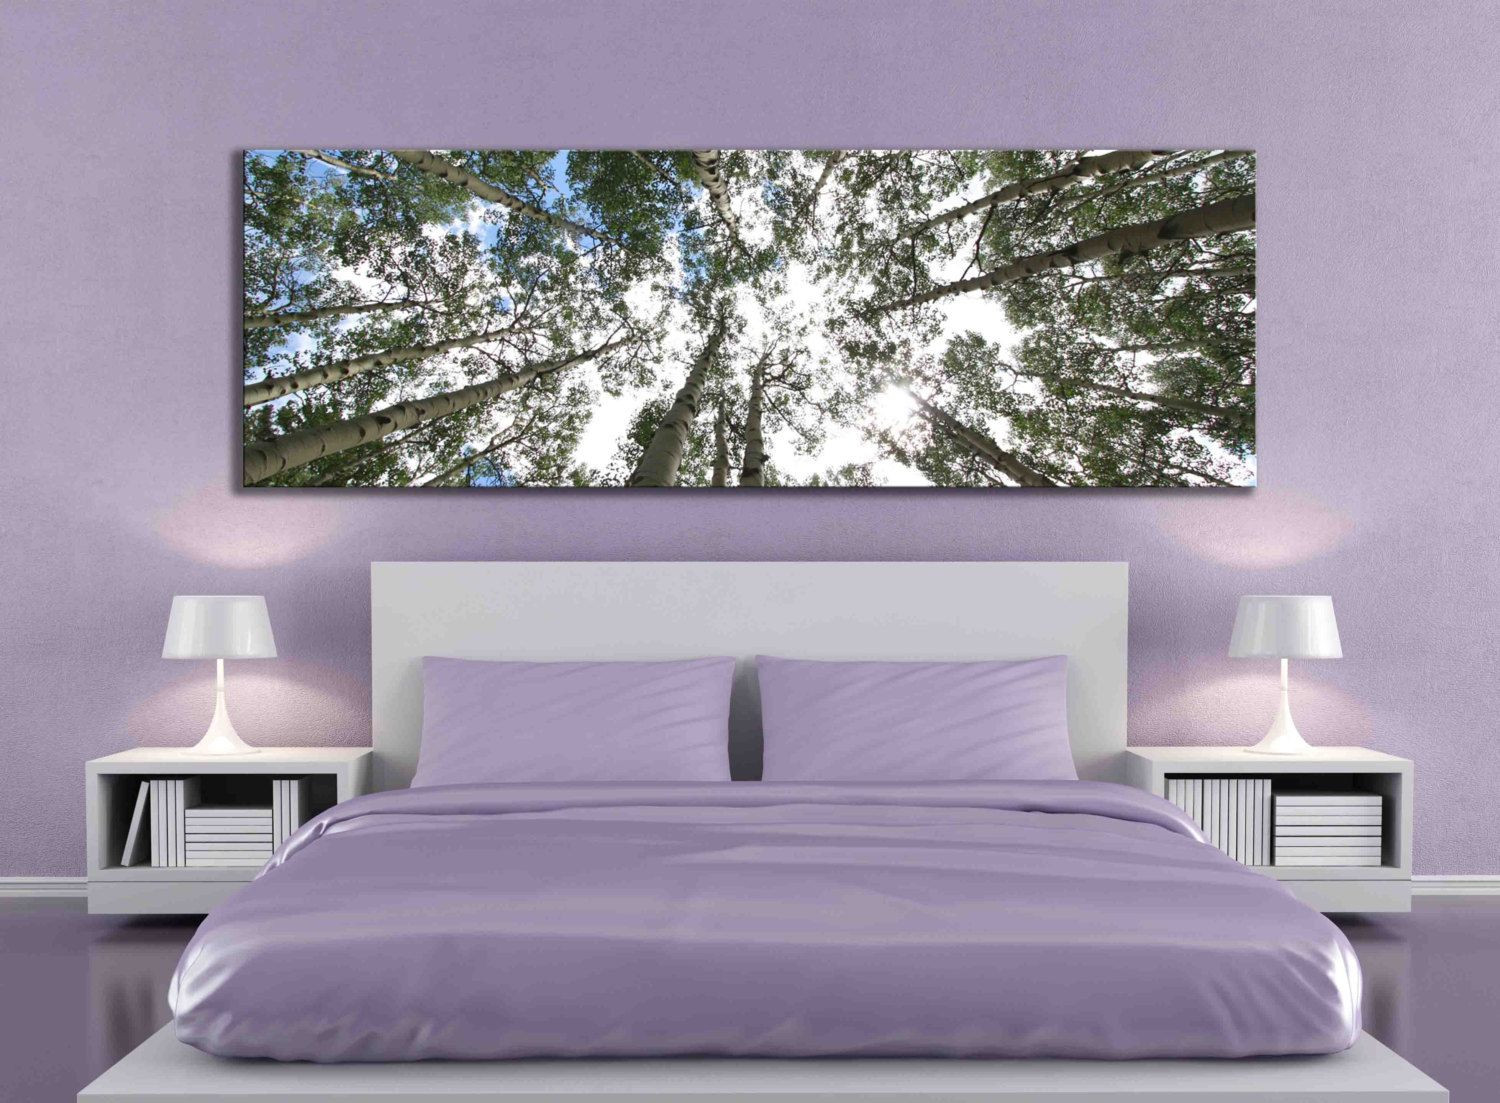 Bedroom Wall Art Trees Big Aspen Tree Photograph Large Panoramic Canvas Print